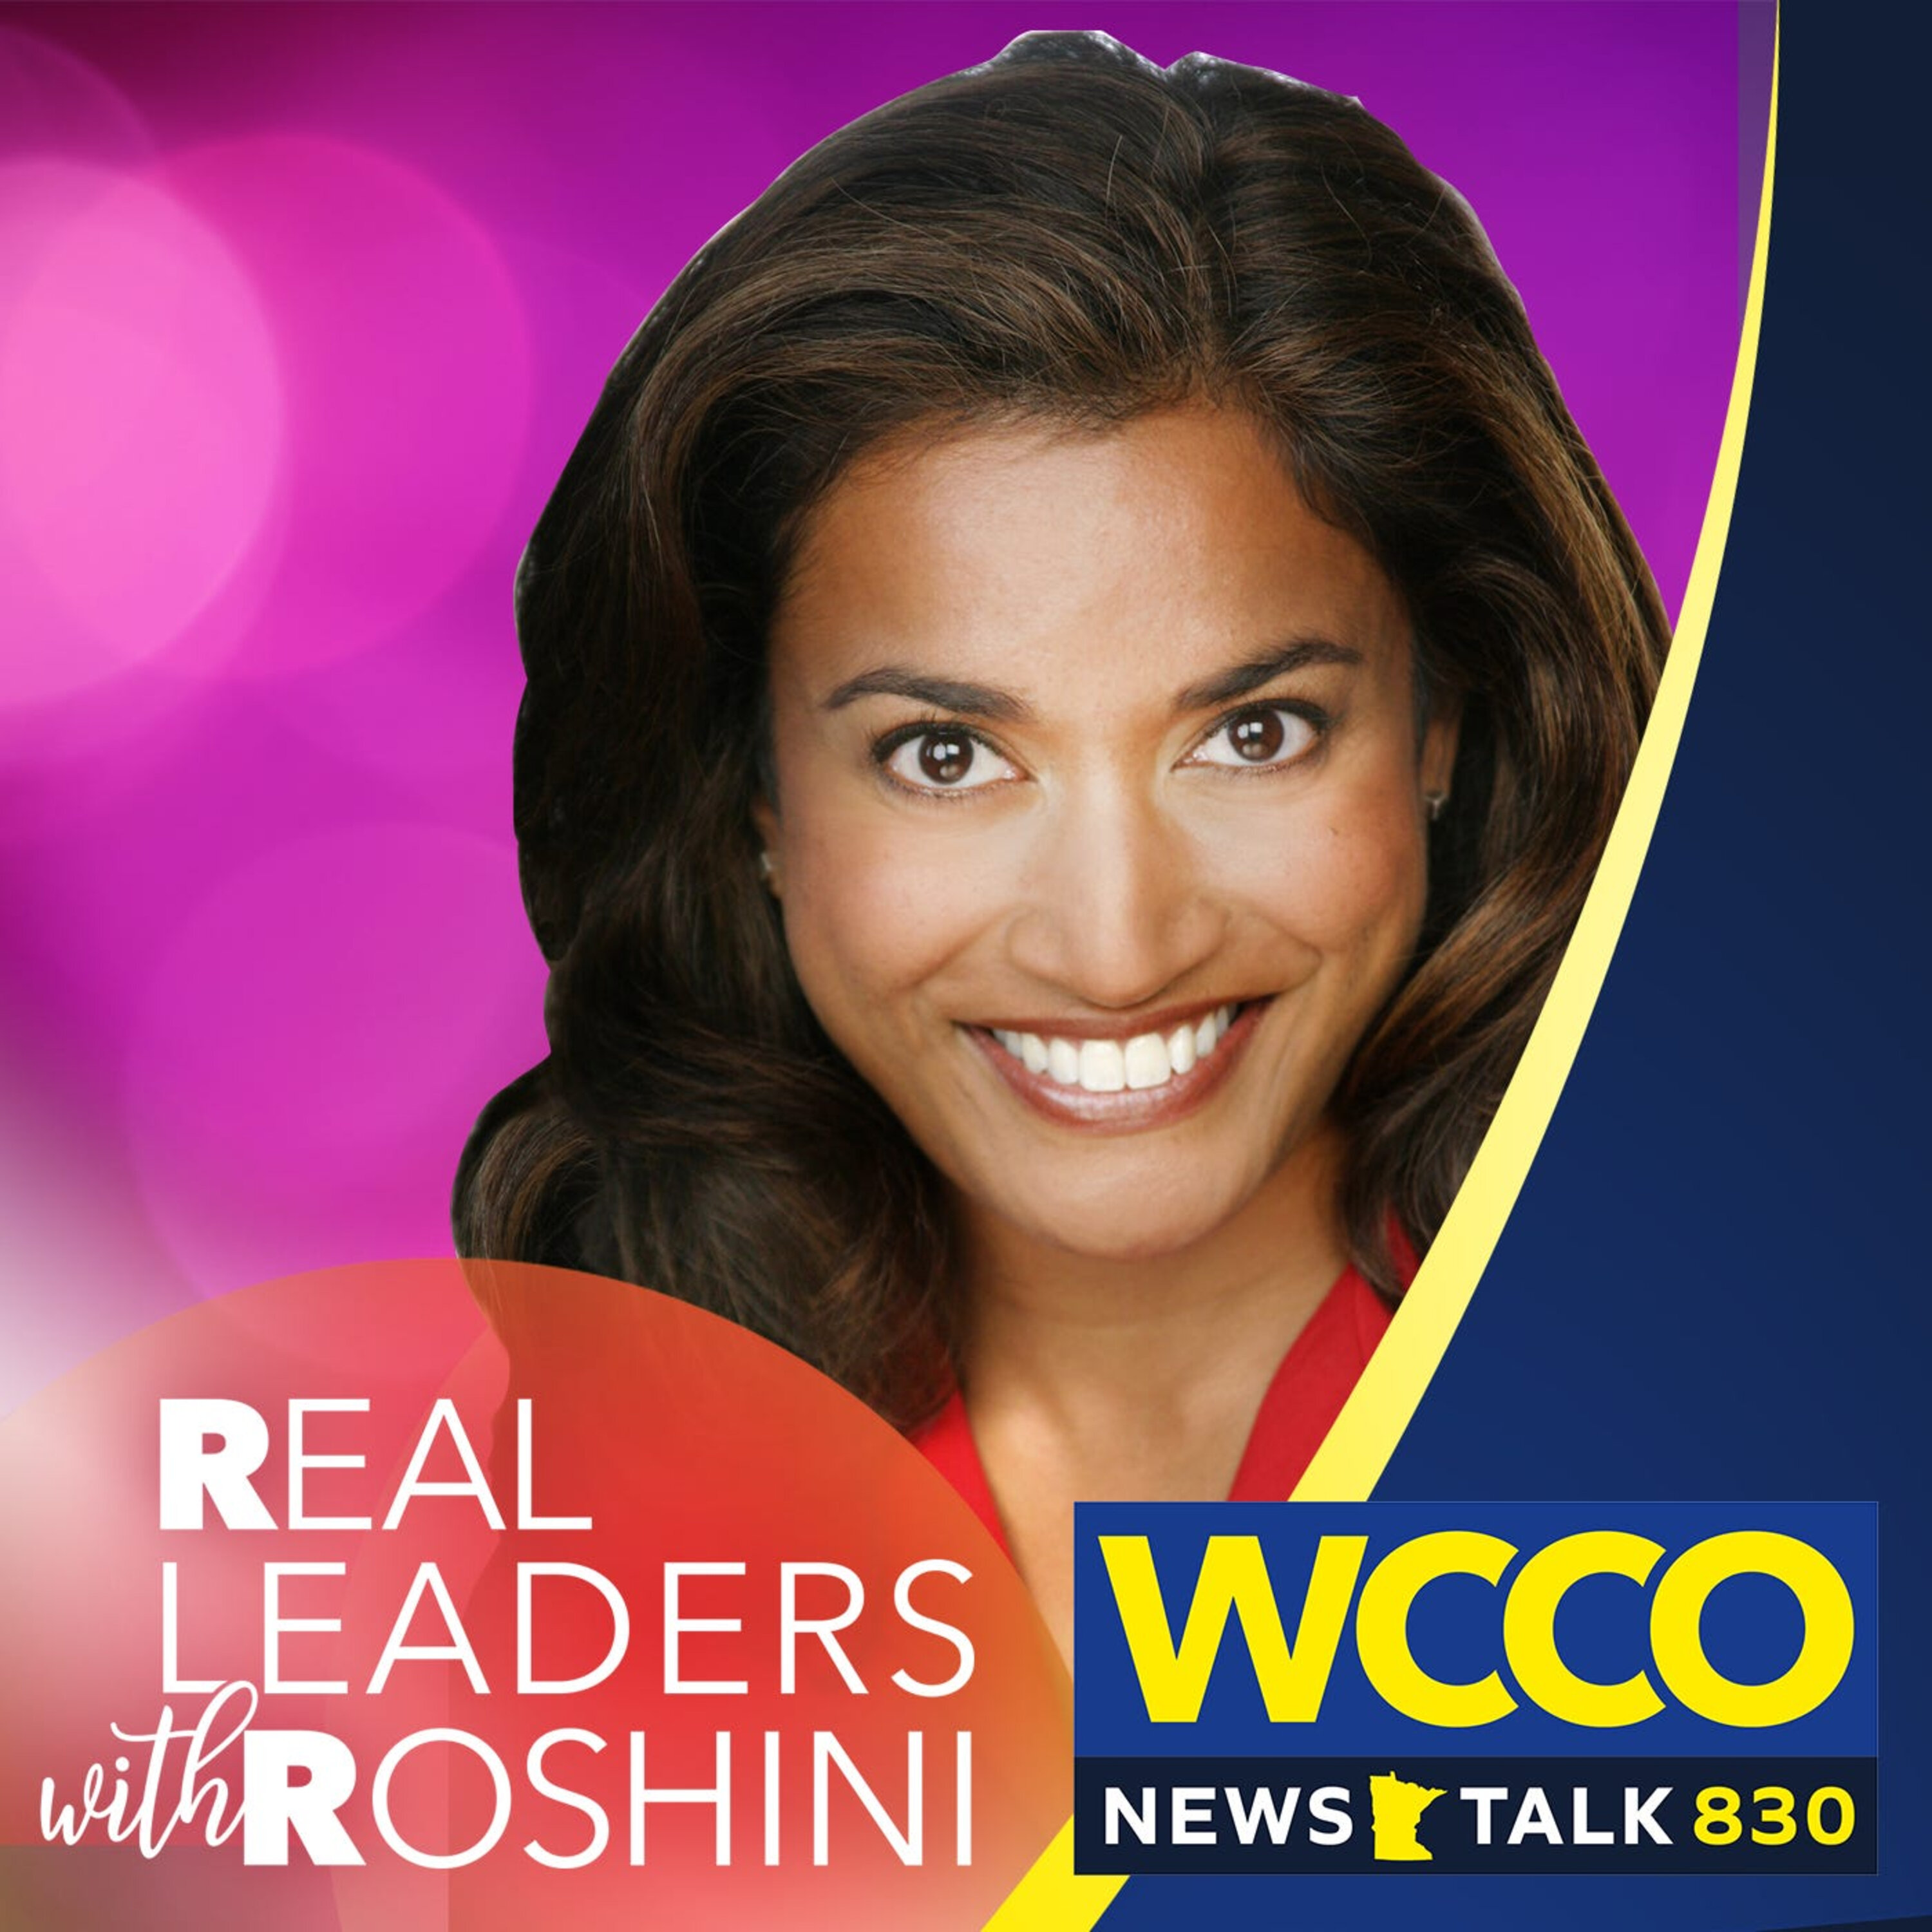 Real Leaders with Roshini | Listen Free on Castbox